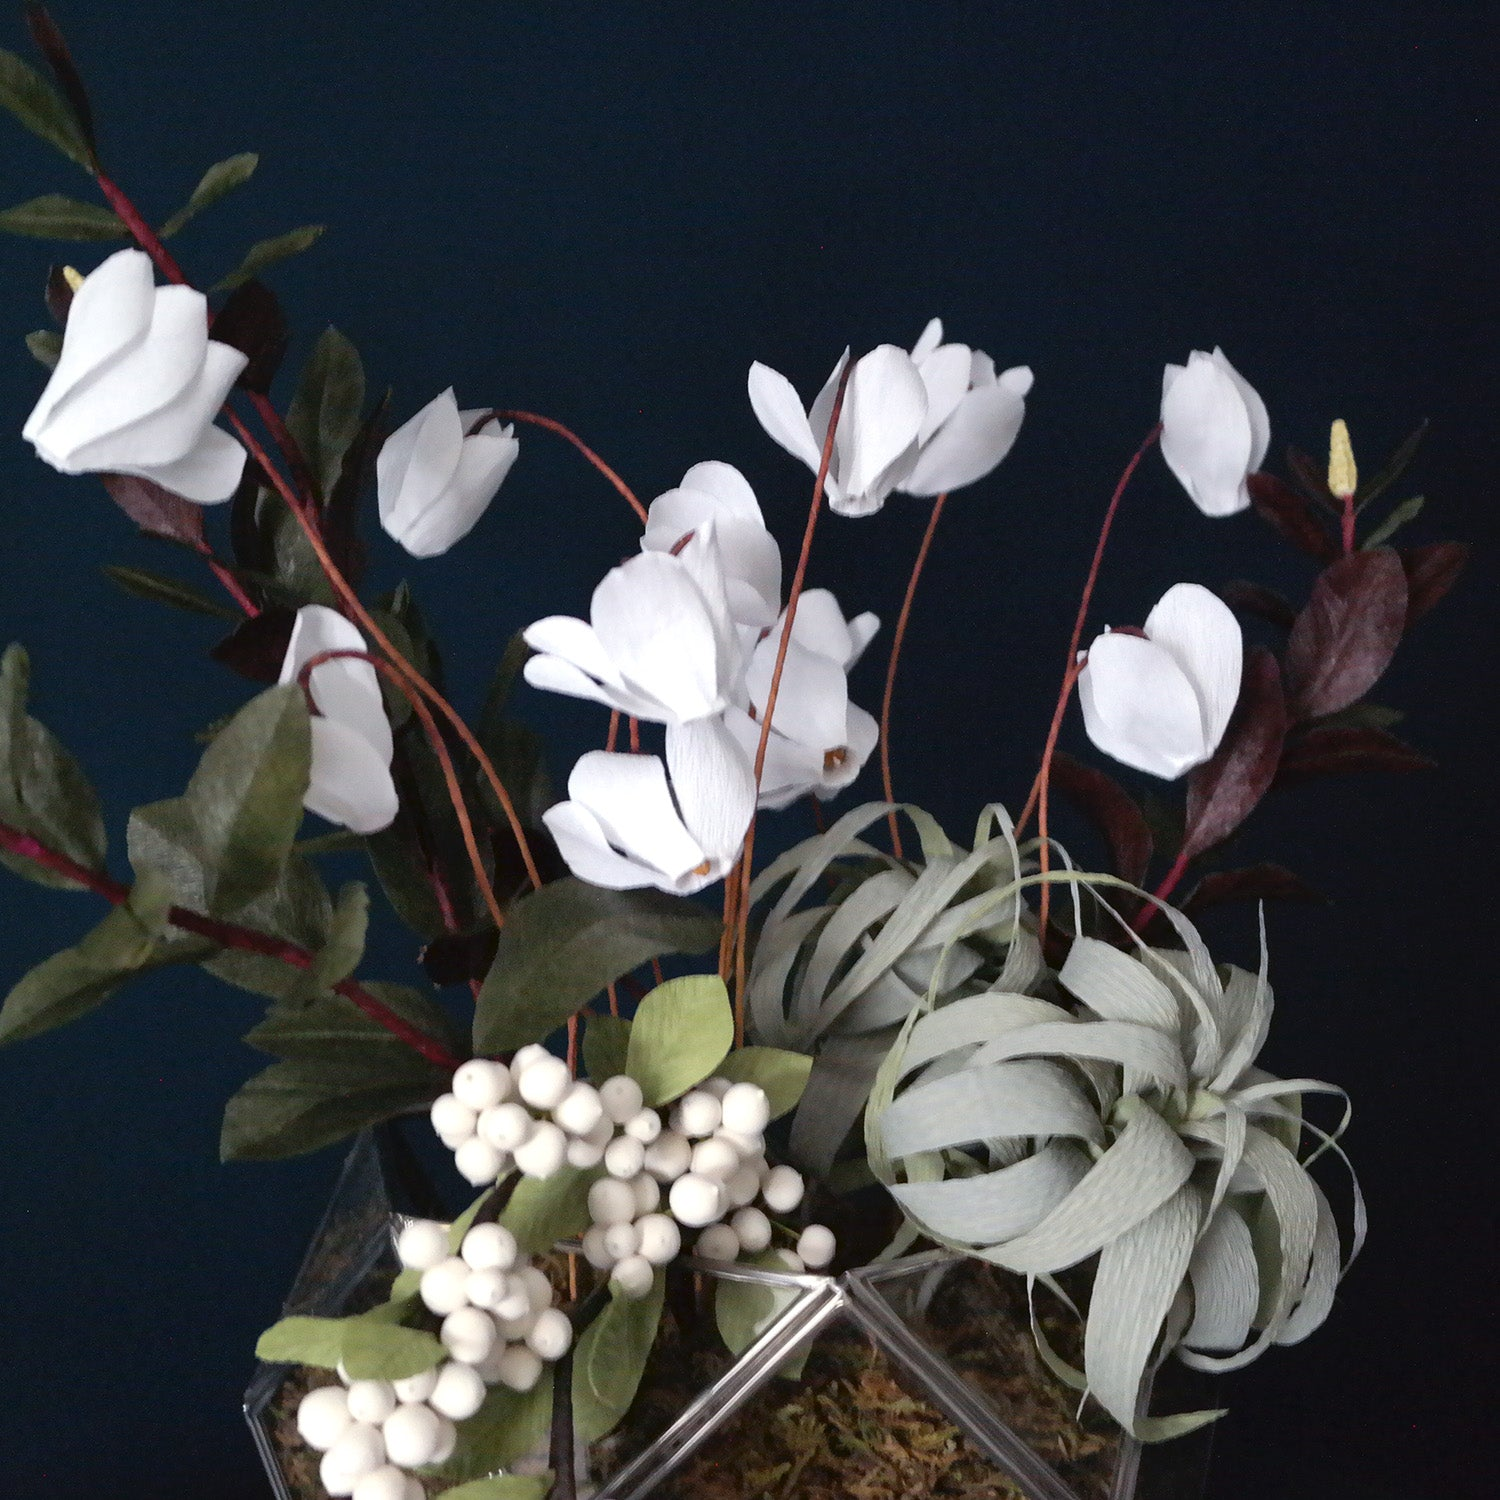 Winter Cyclamen Terrarium Arrangement from Crepe Paper